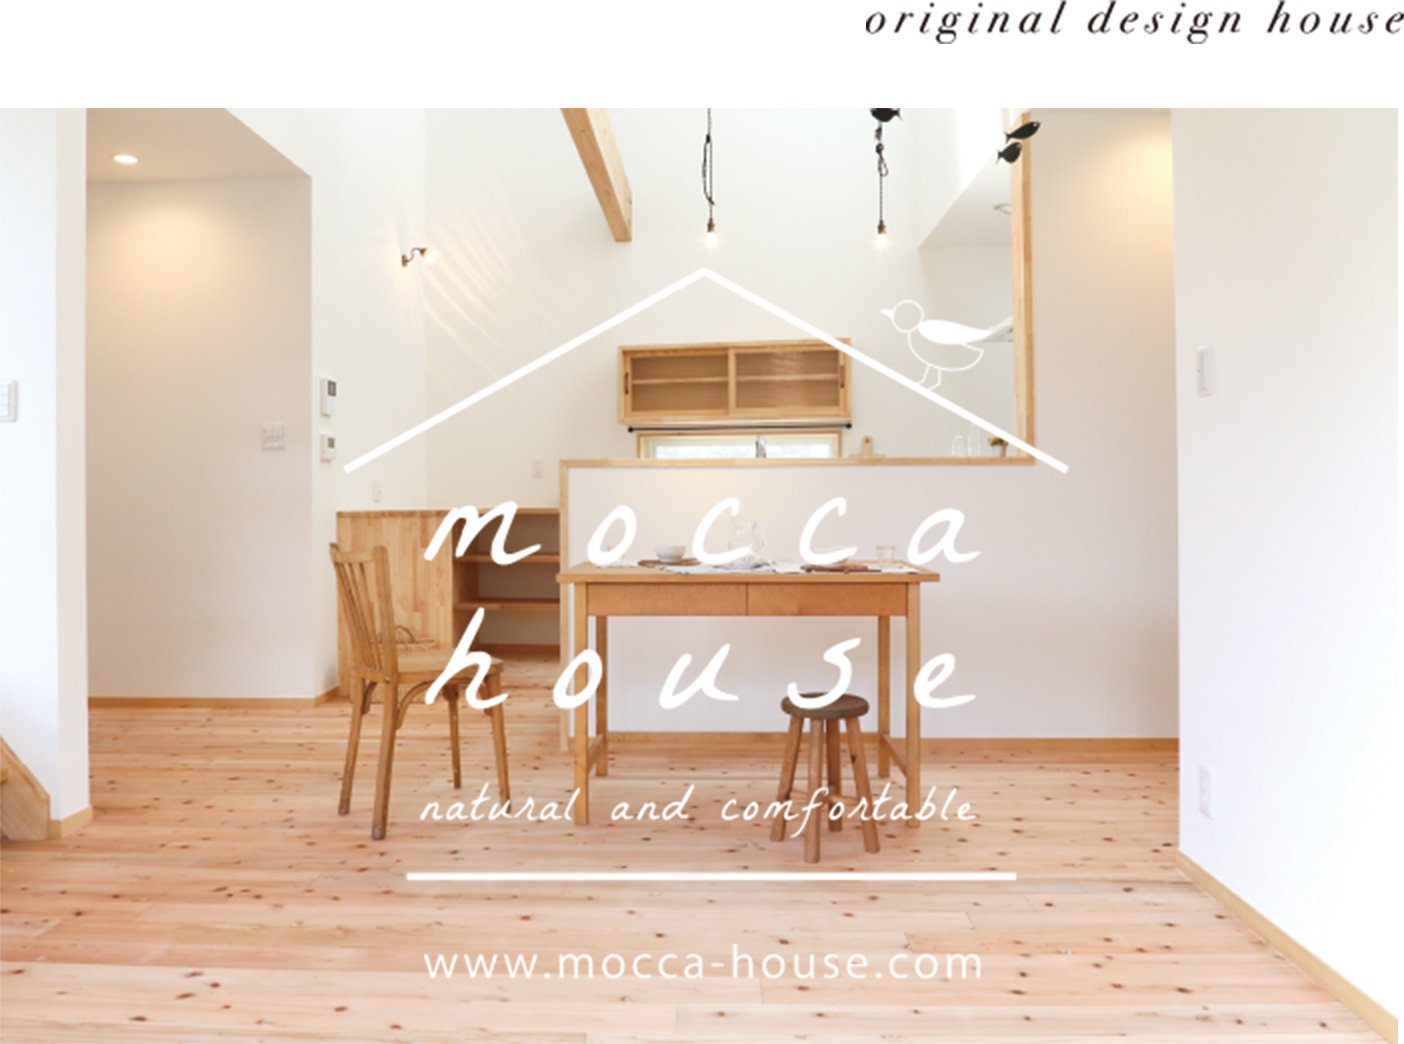 mocca haouse